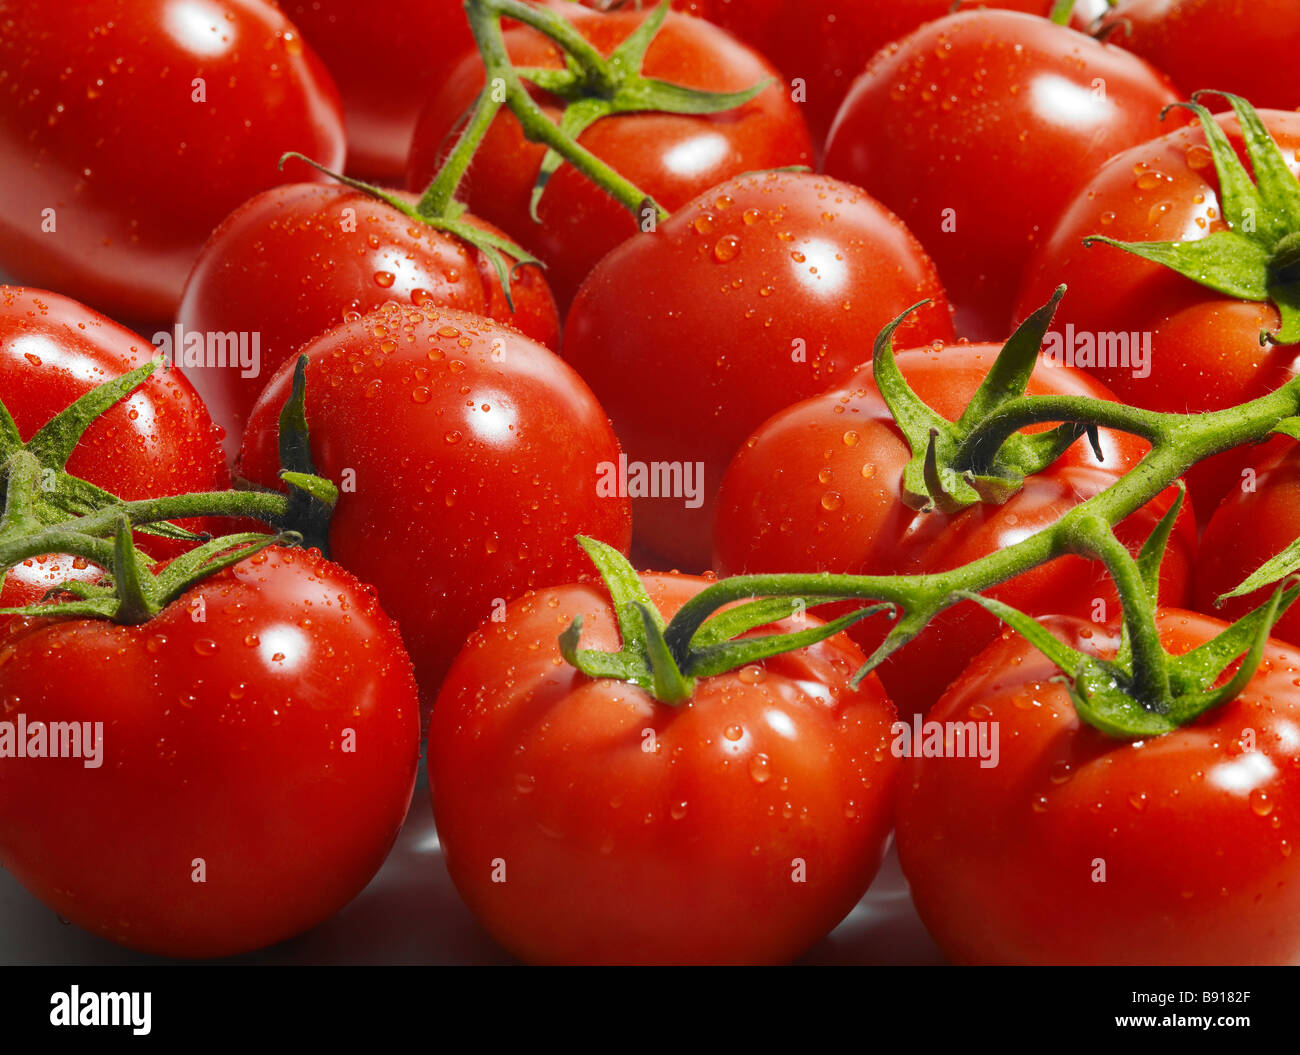 Fresh vine ripened tomatoes - Stock Image